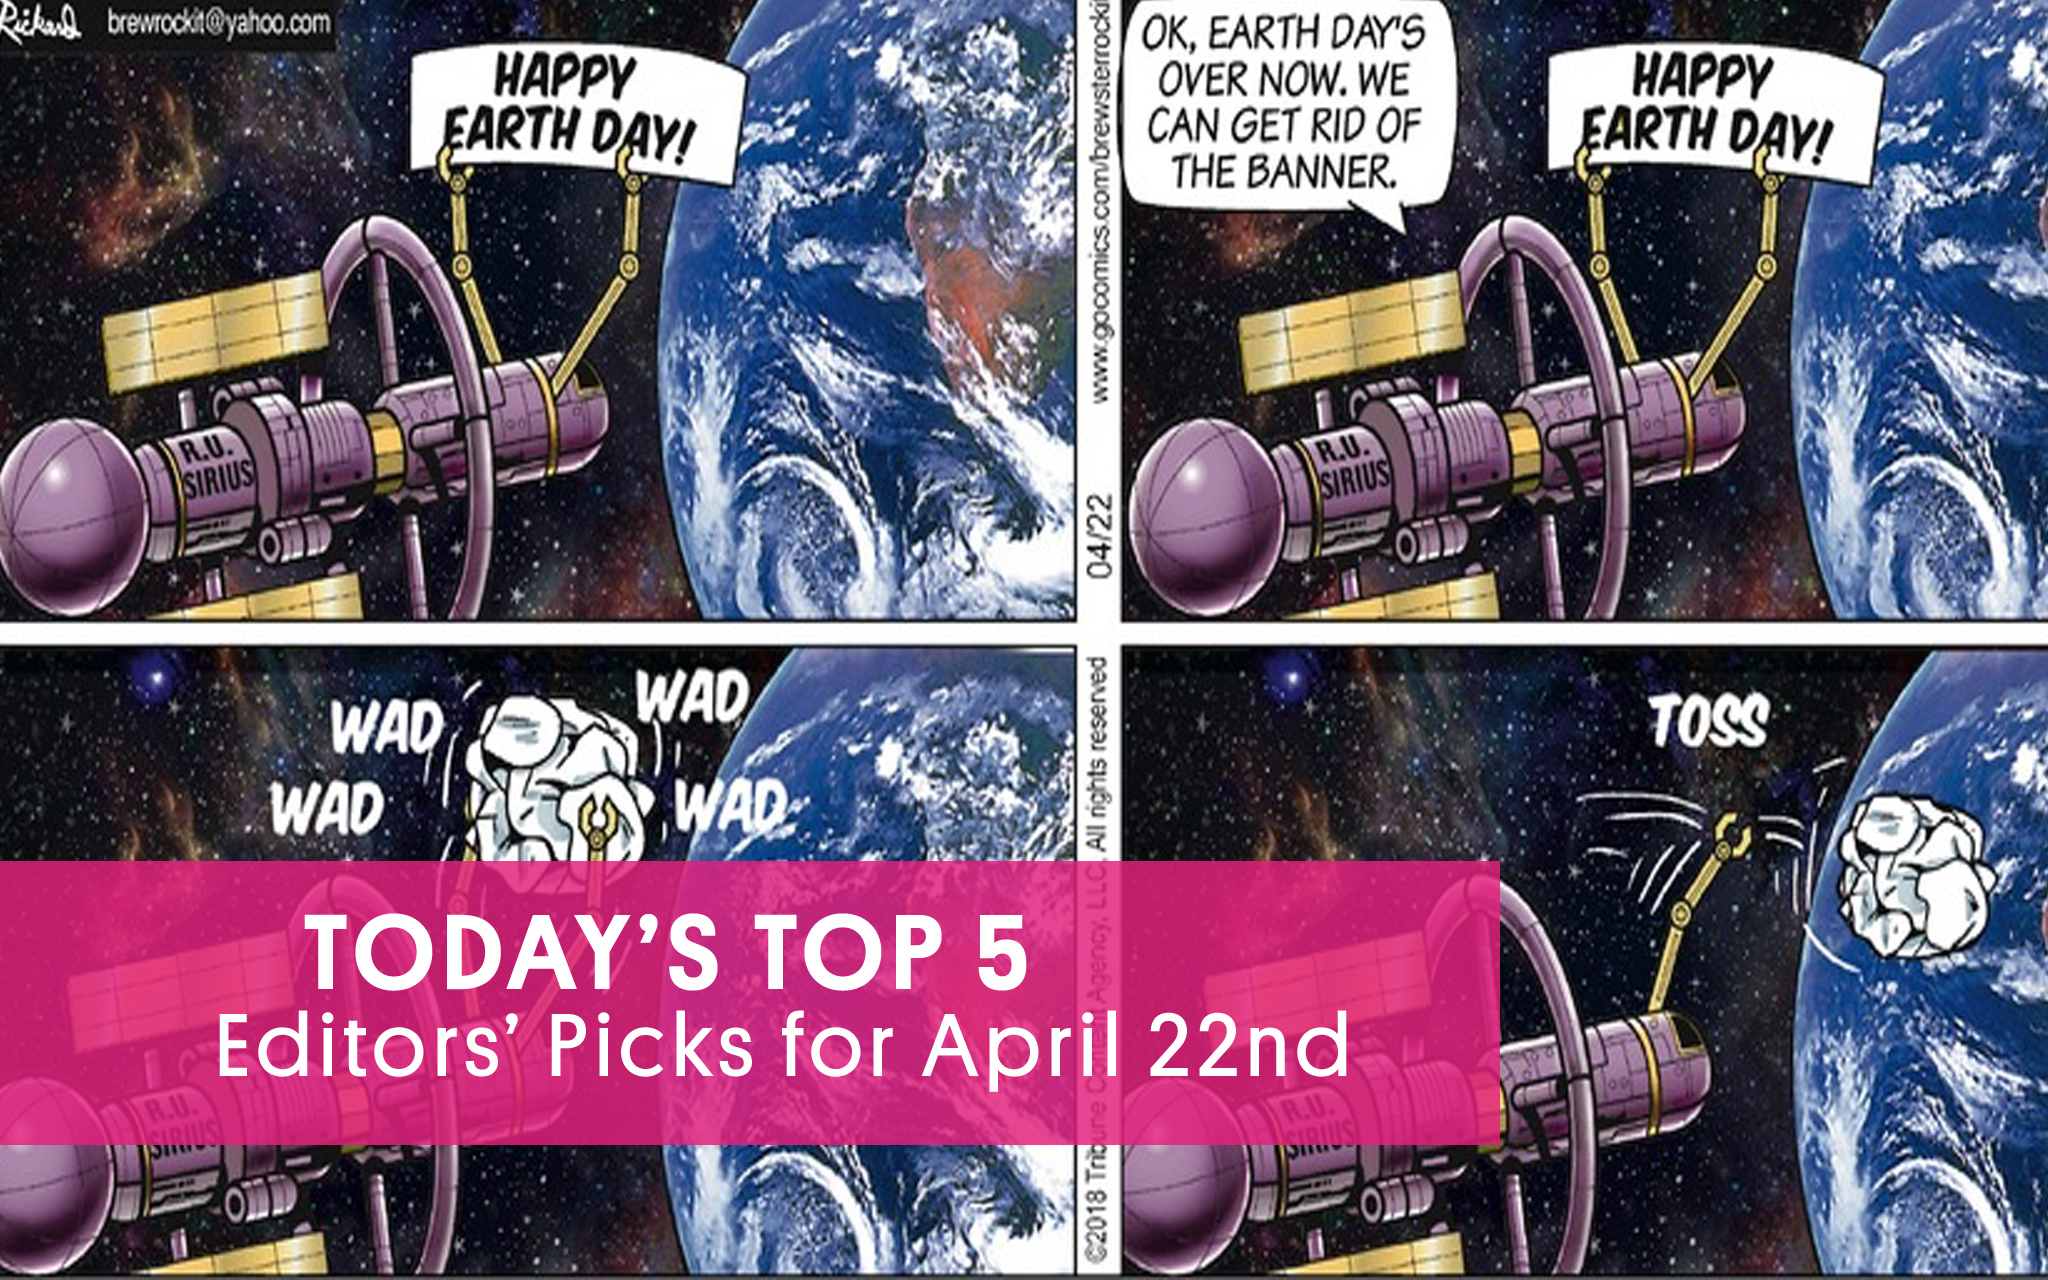 If You're Skipper of a Space Station on Earth Day Avoid This Common Error